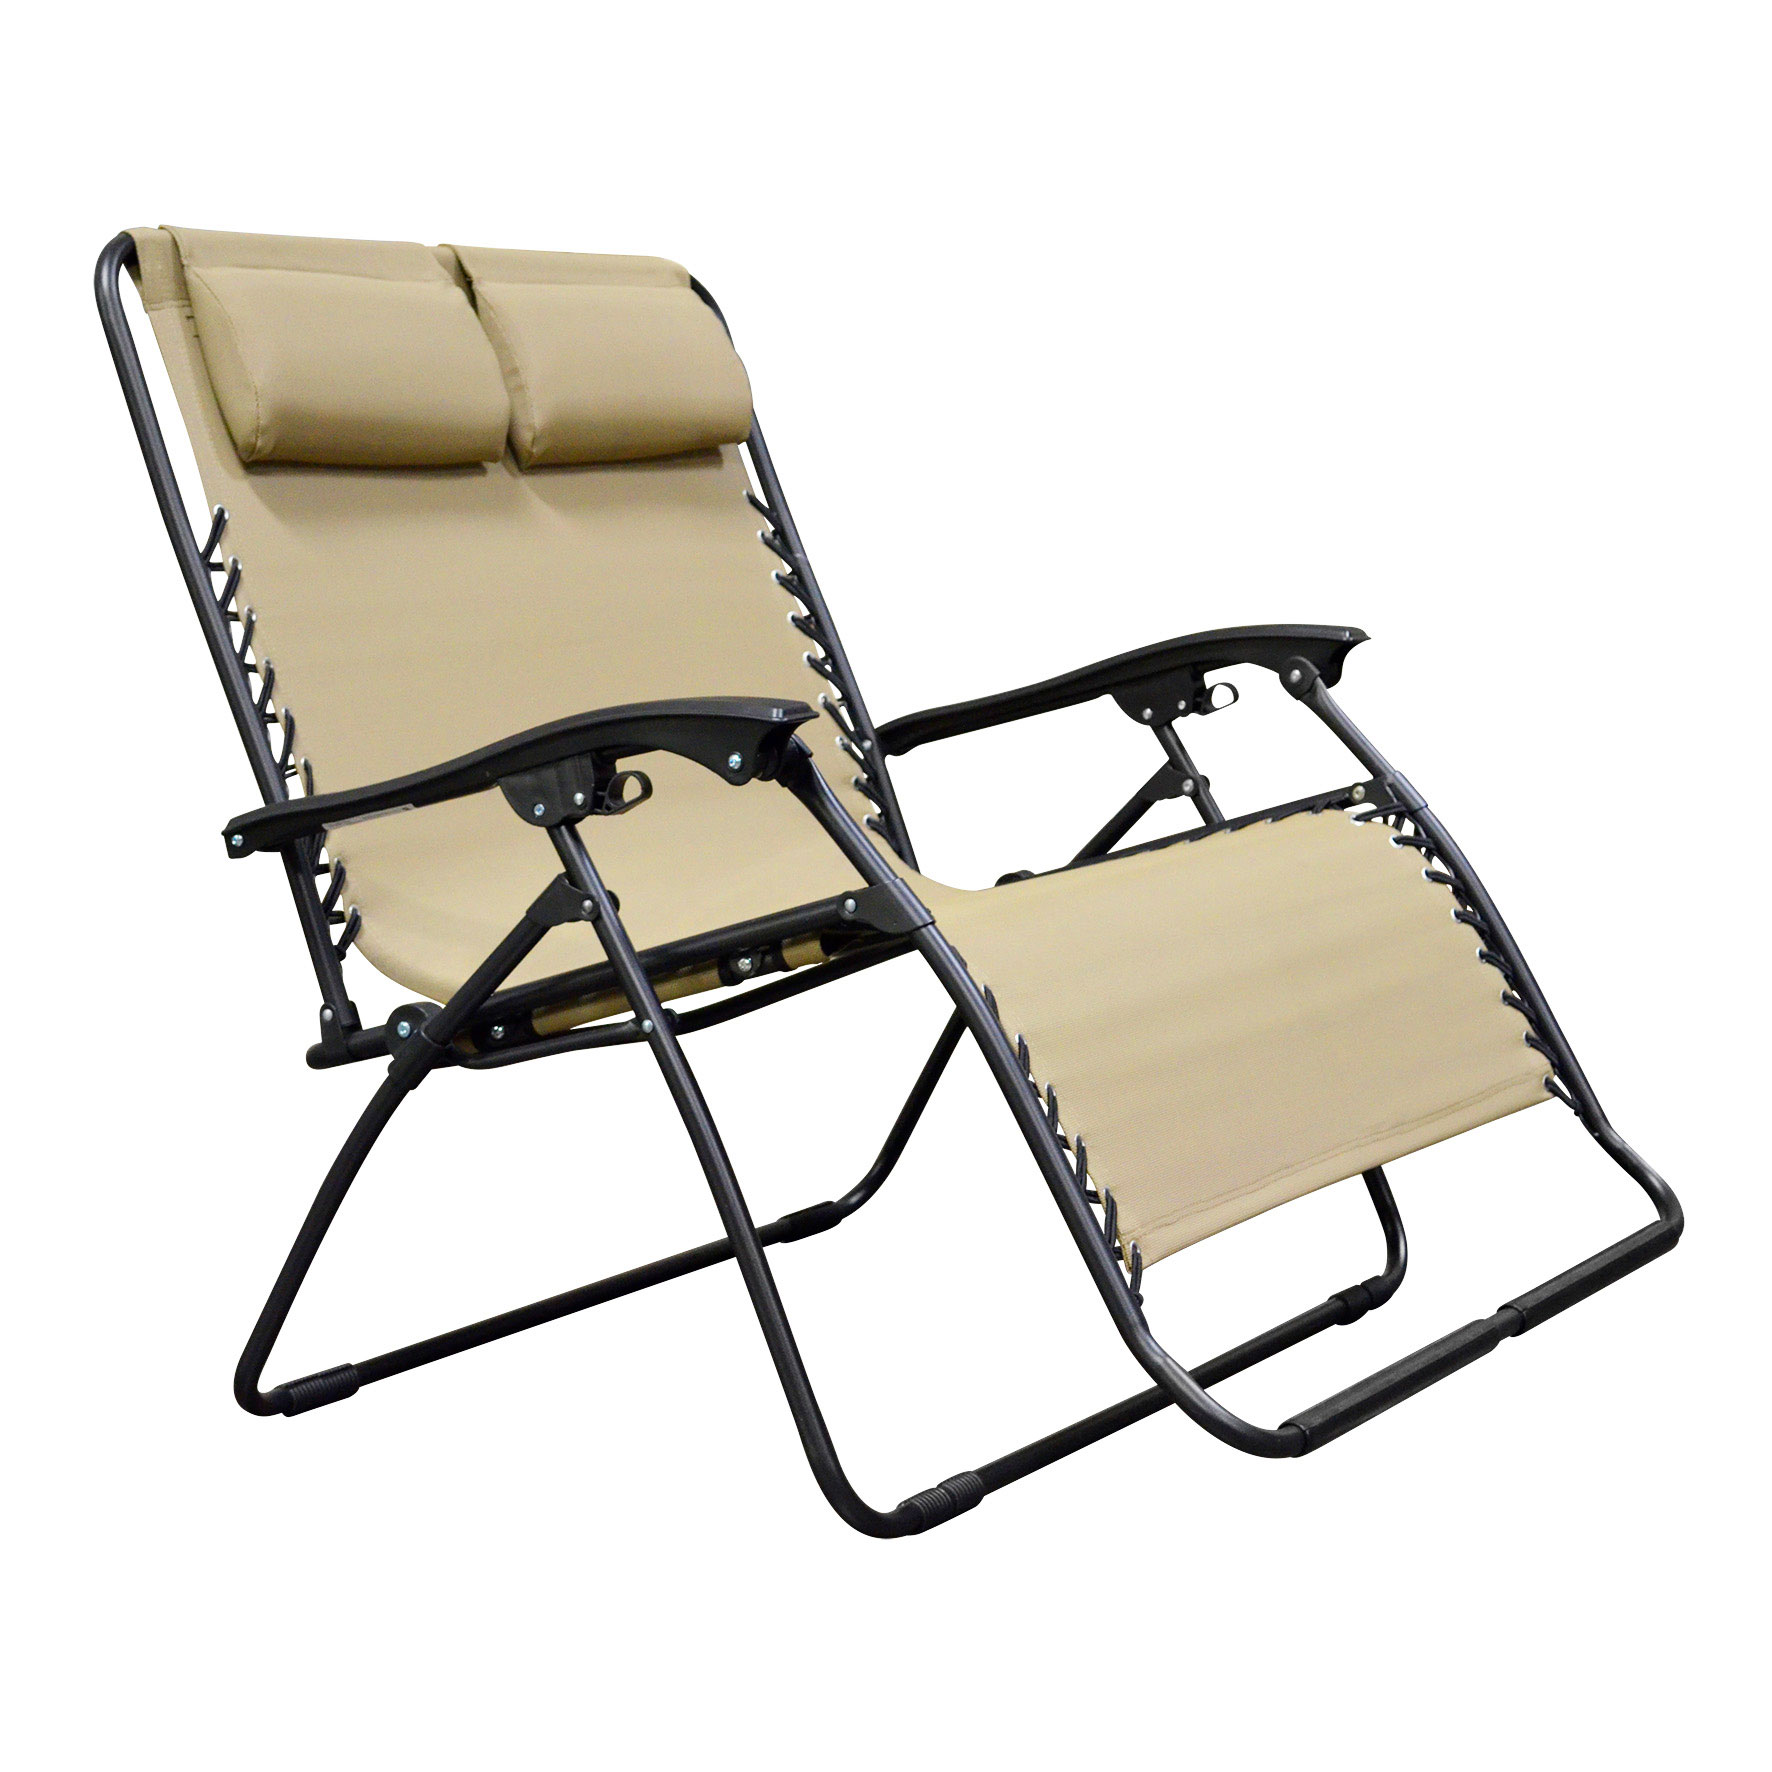 Caravan Canopy Infinity Zero Gravity Loveseat Steel Frame Patio Deck Lawn  Chair